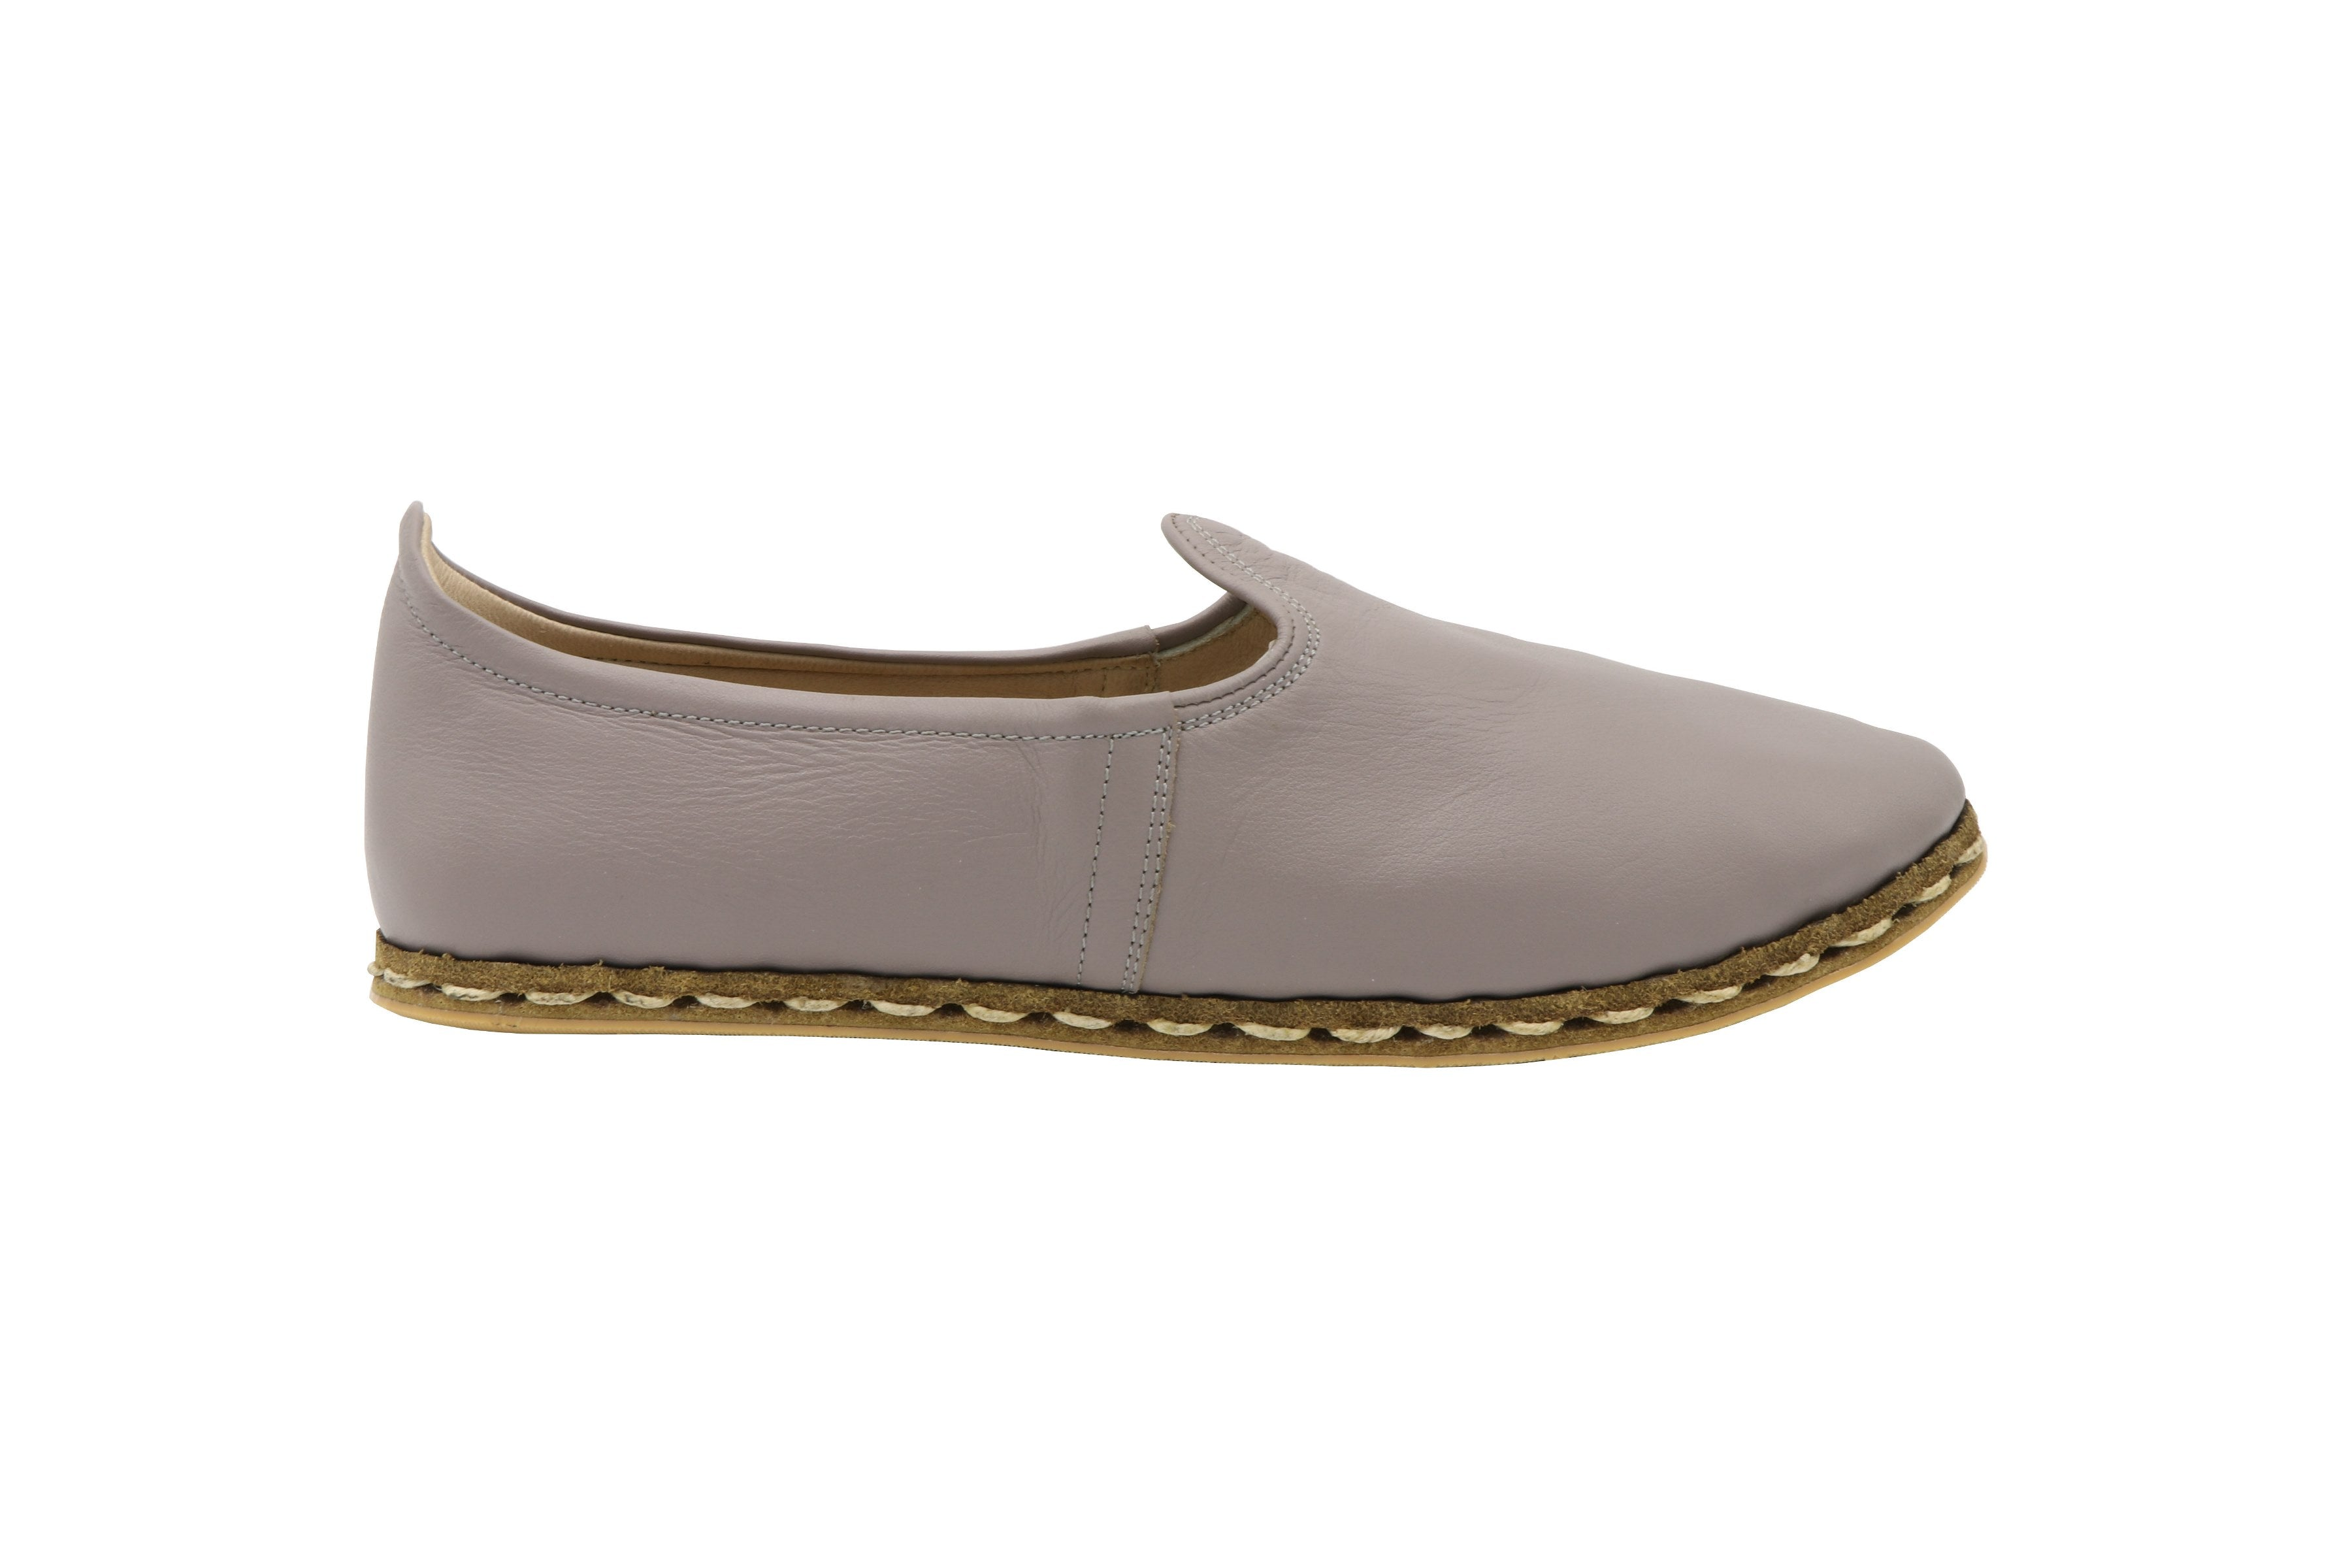 e056294f9b0581 Healthy Leather Slip Ons You Deserve - Gizze Handmade